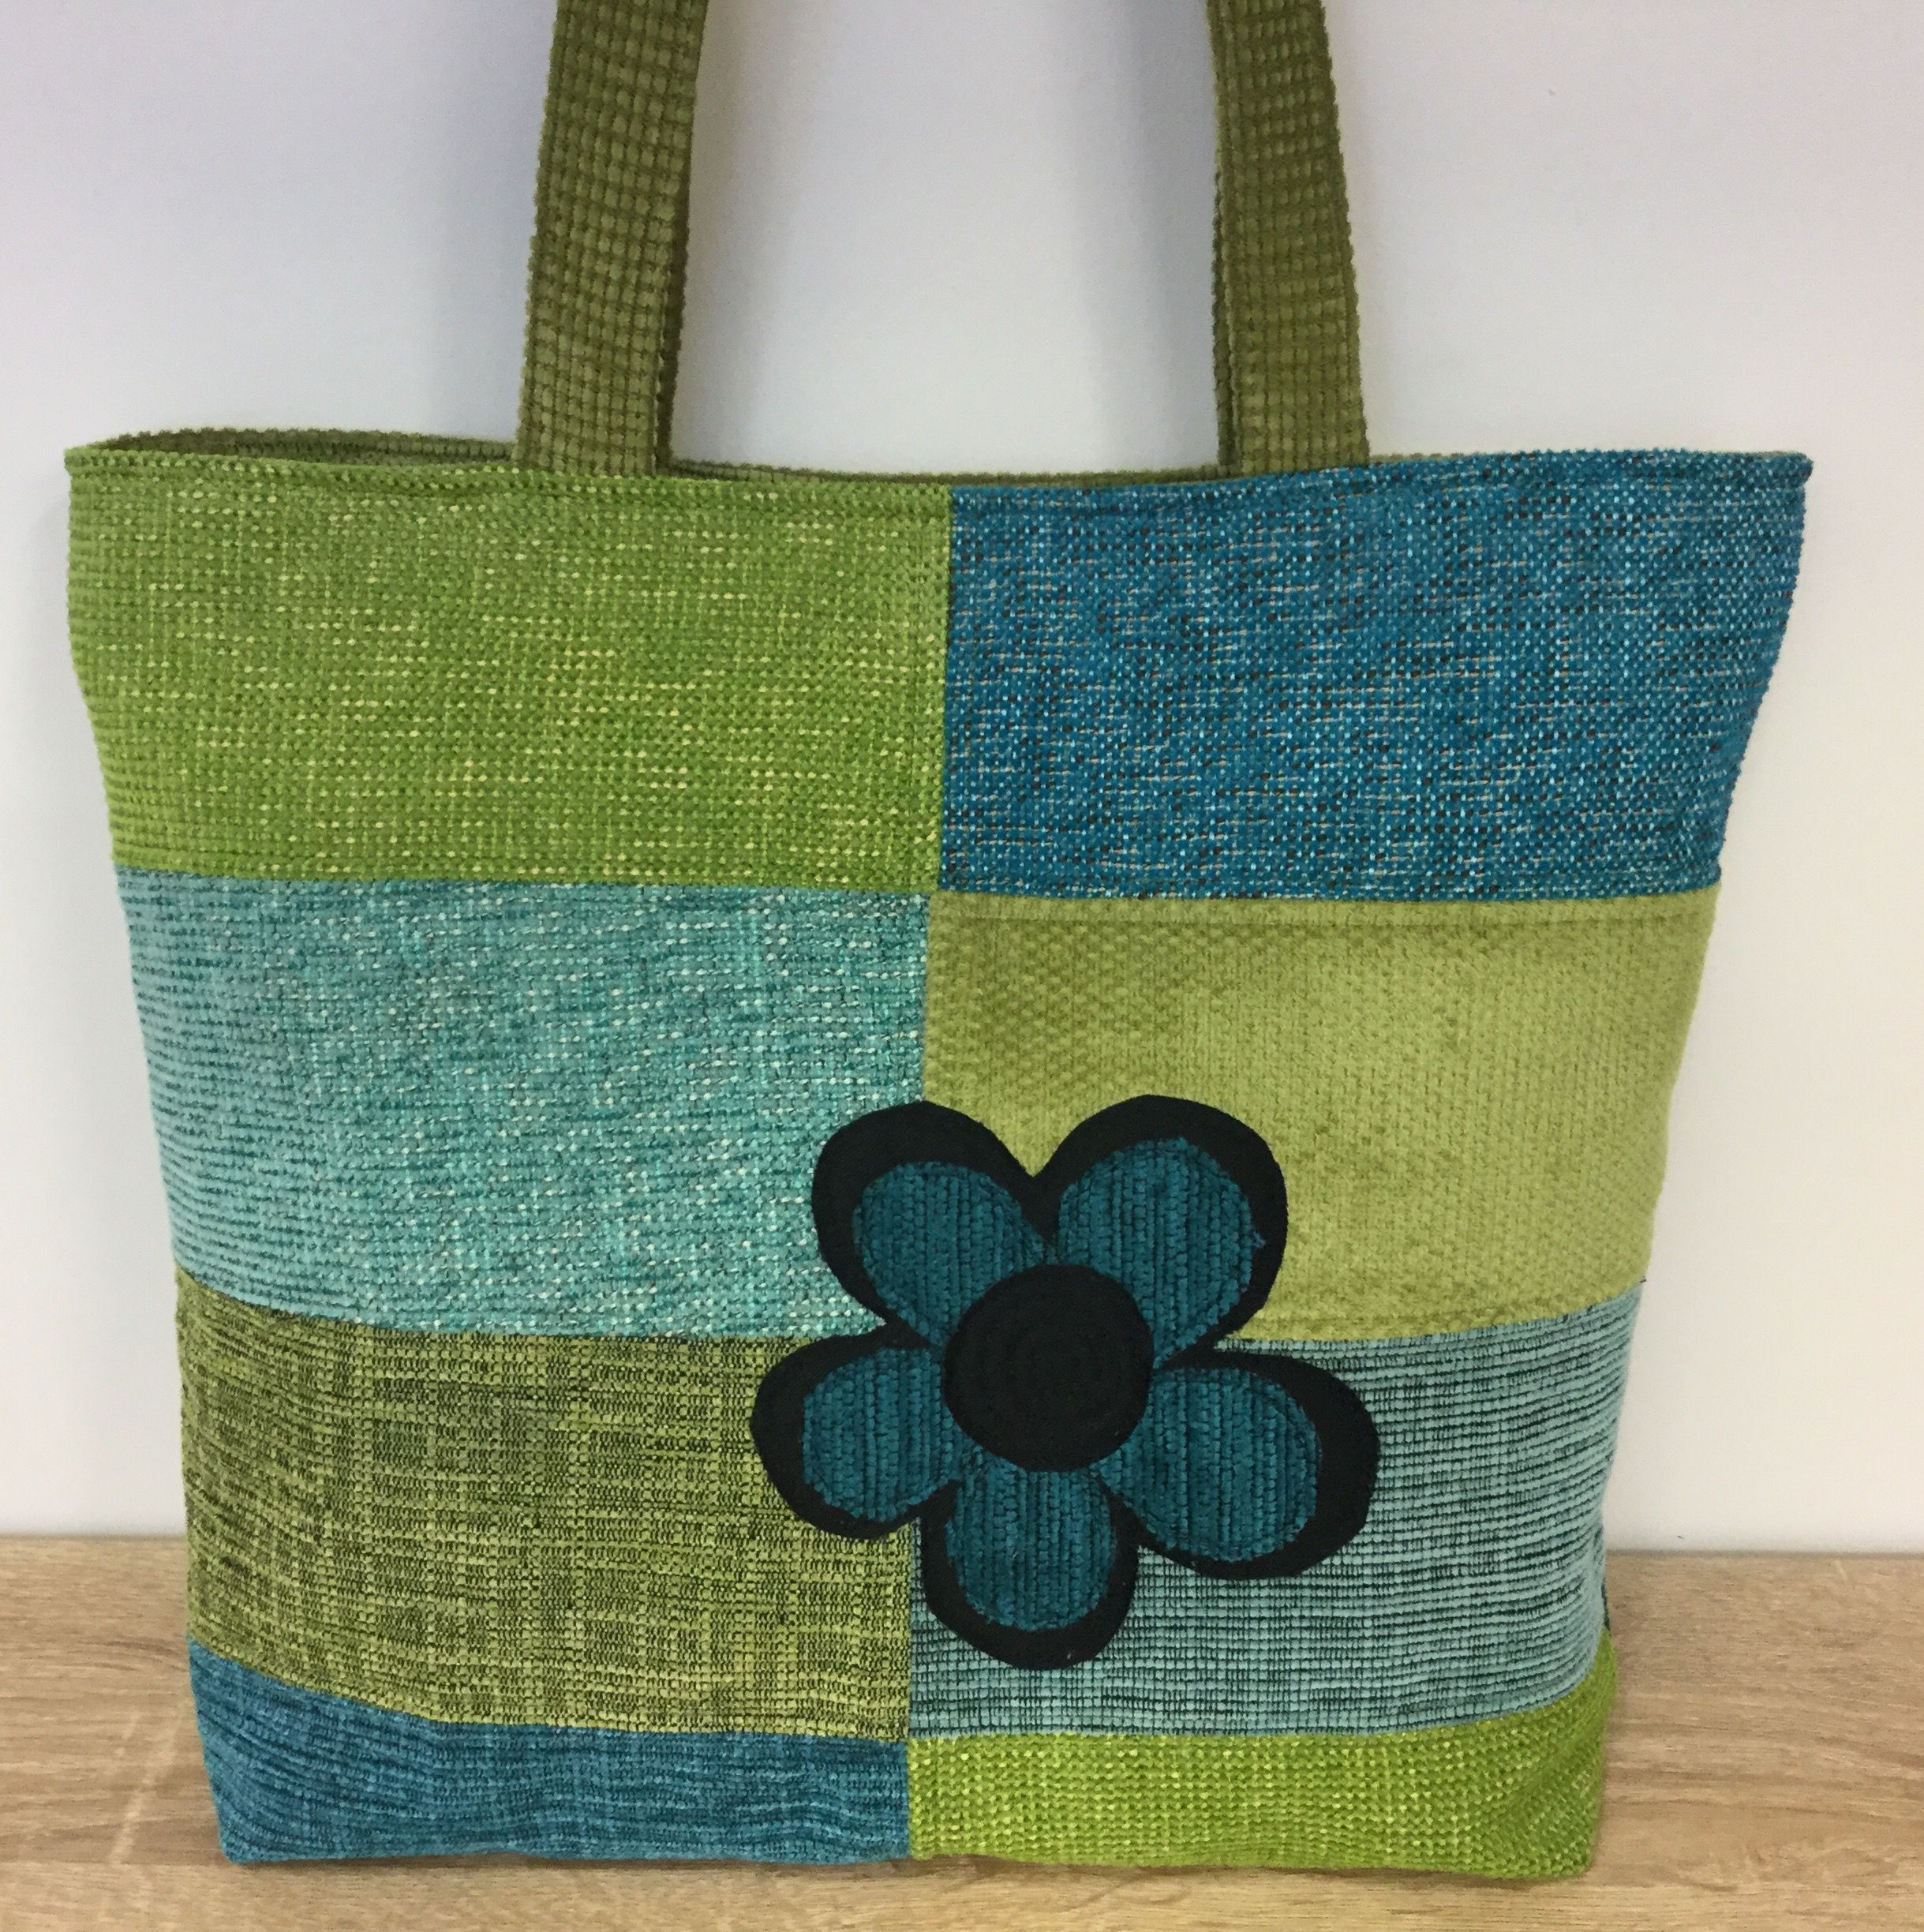 Upcycled   Made With Upholstery Fabric Samples